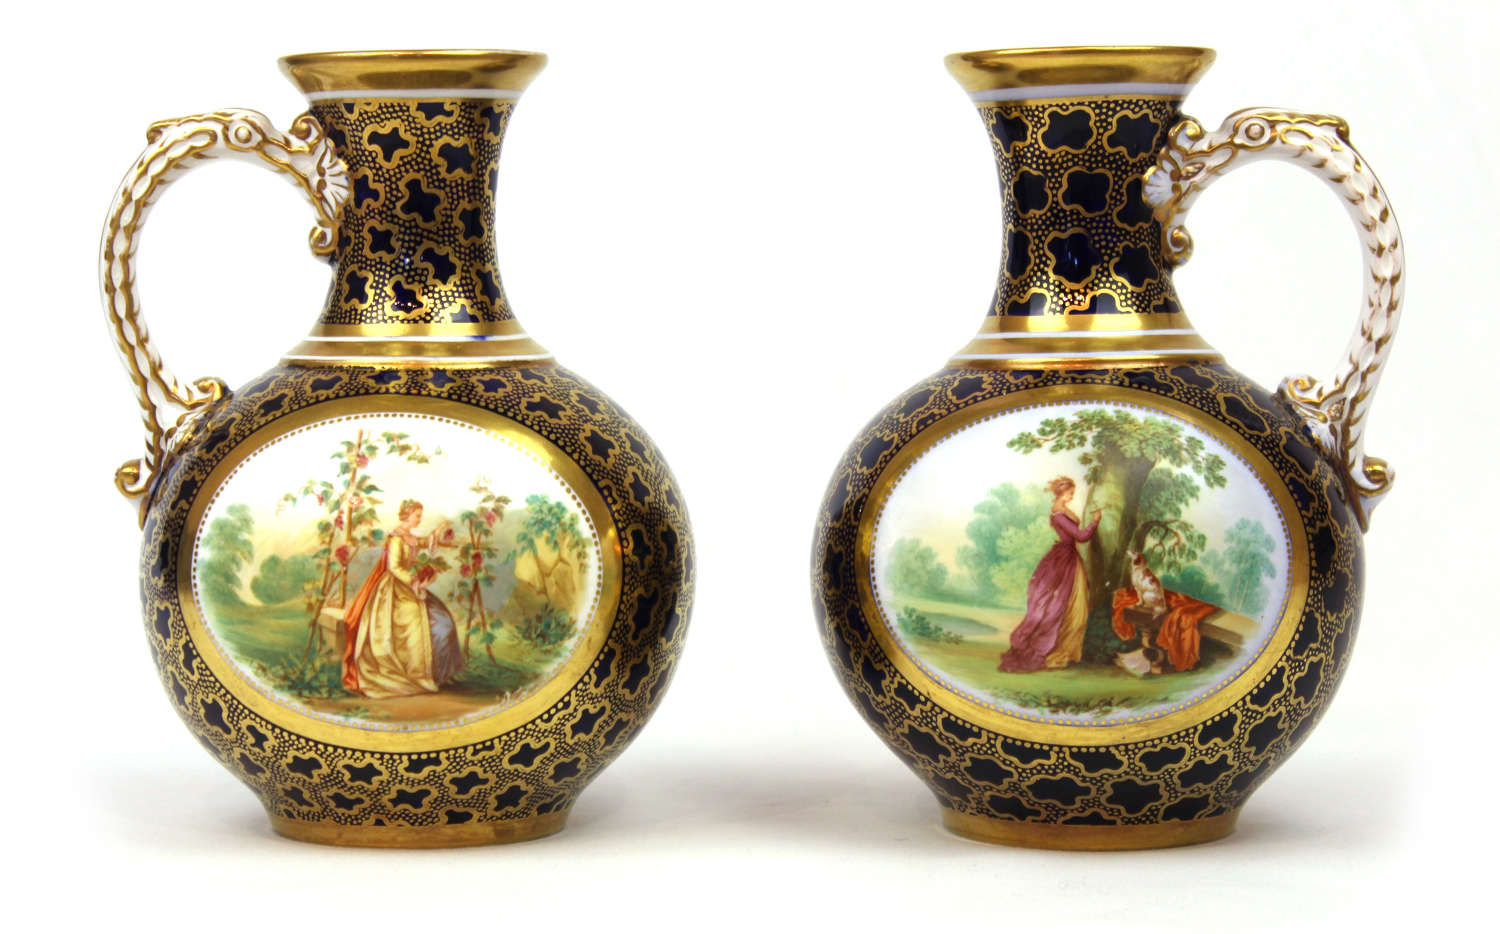 A fine pair of 18th century sevres bottle jugs